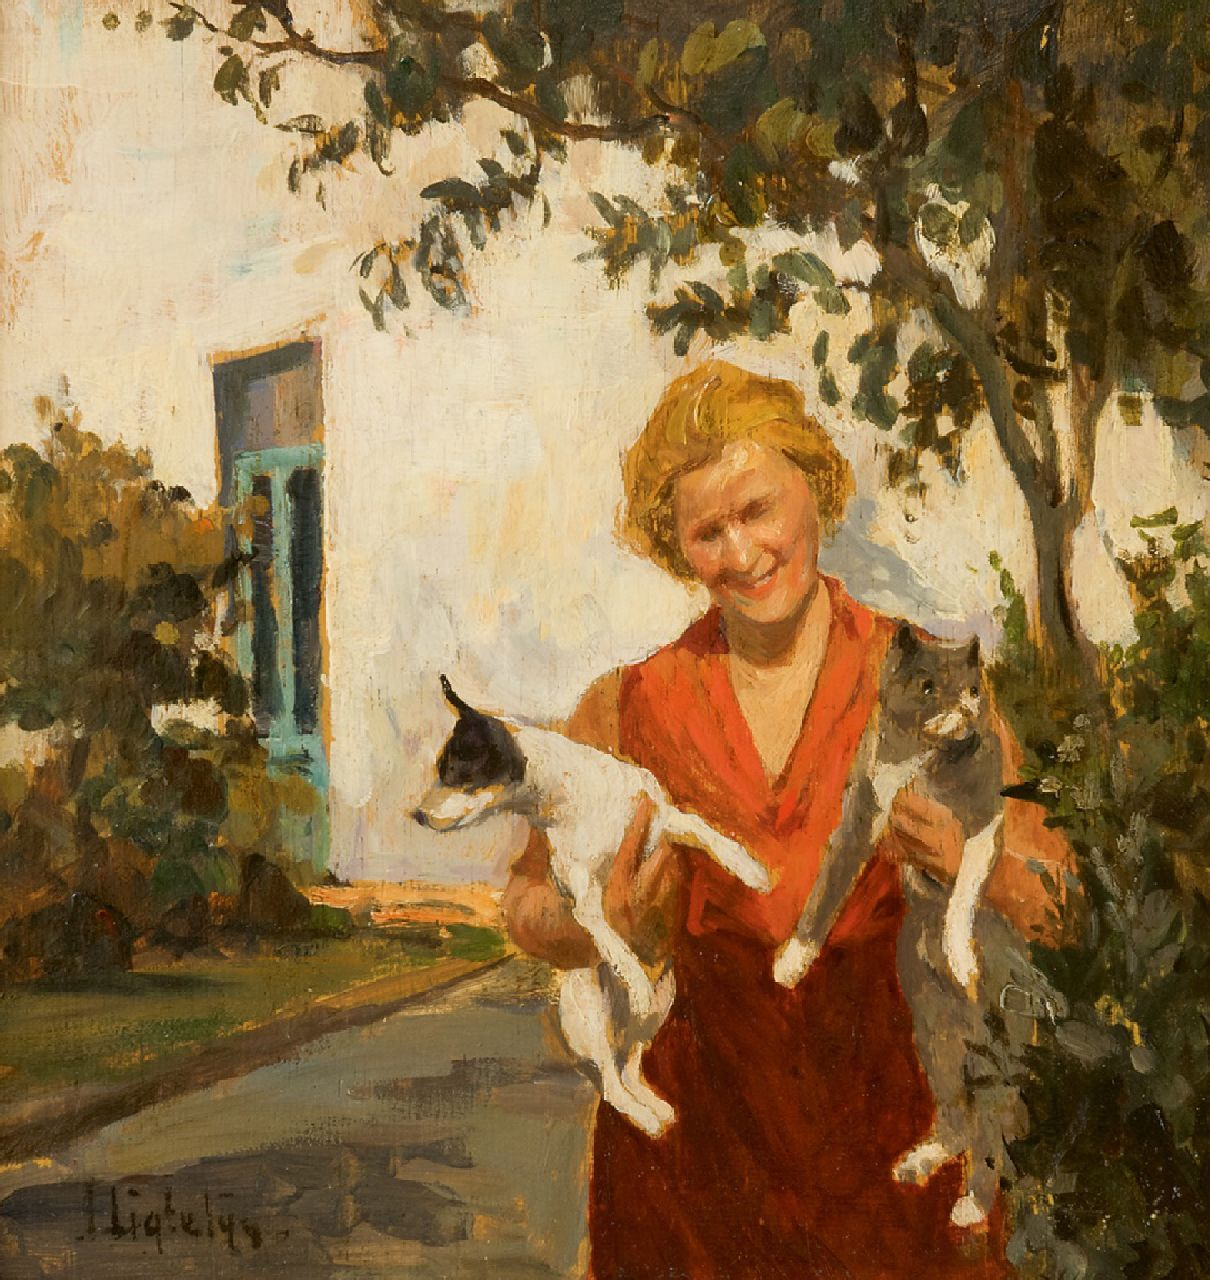 Ligtelijn E.J.  | Evert Jan Ligtelijn | Paintings offered for sale | A lady with her dog and cat in the garden, oil on panel 24.0 x 22.7 cm, signed l.l.